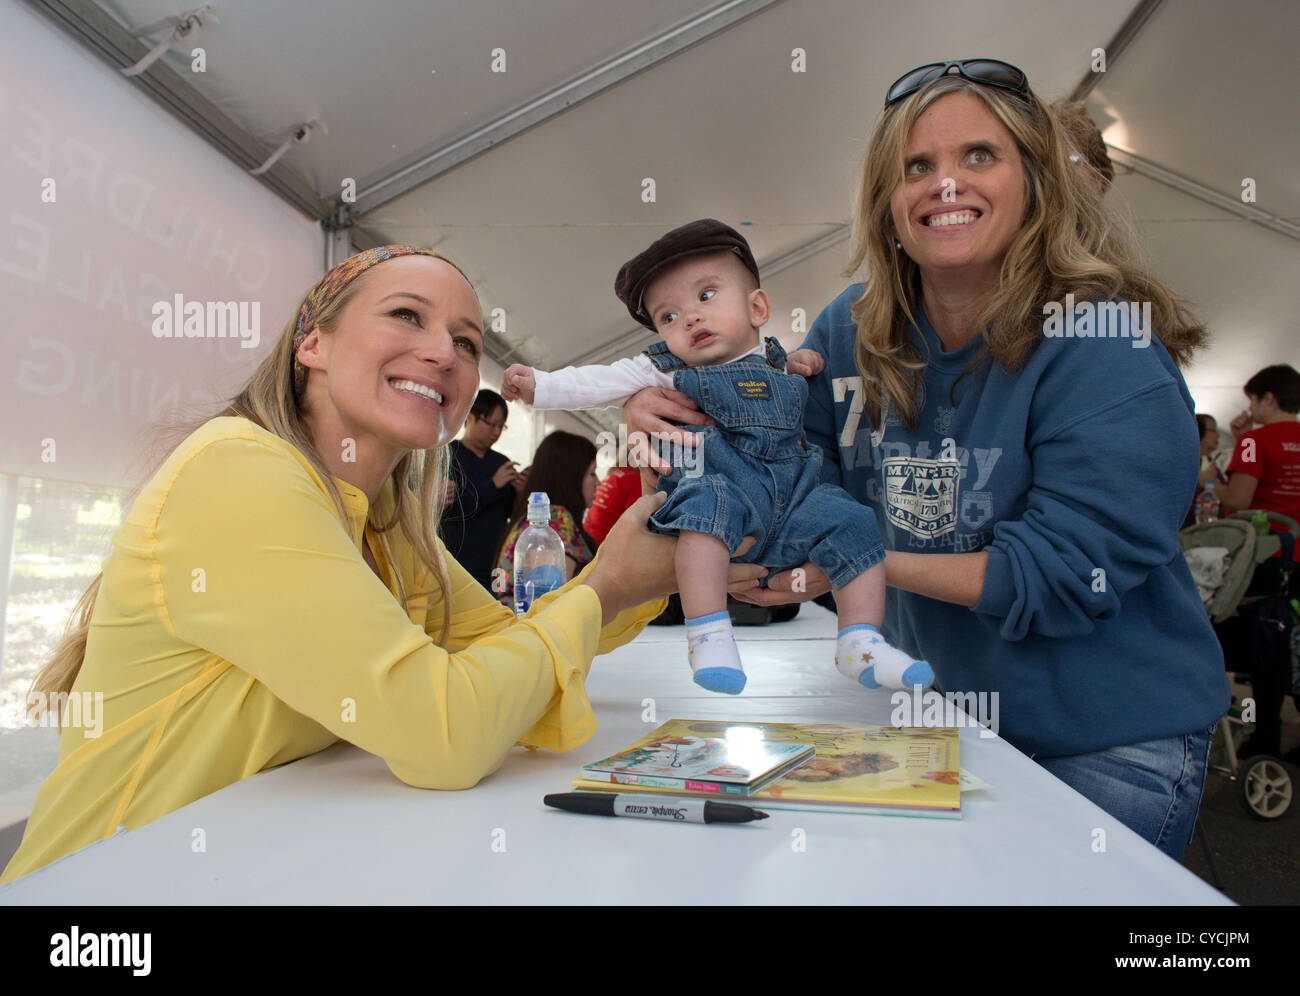 Singer and author Jewel poses with fans while signing copies of her children's book at the Texas Book Festival - Stock Image